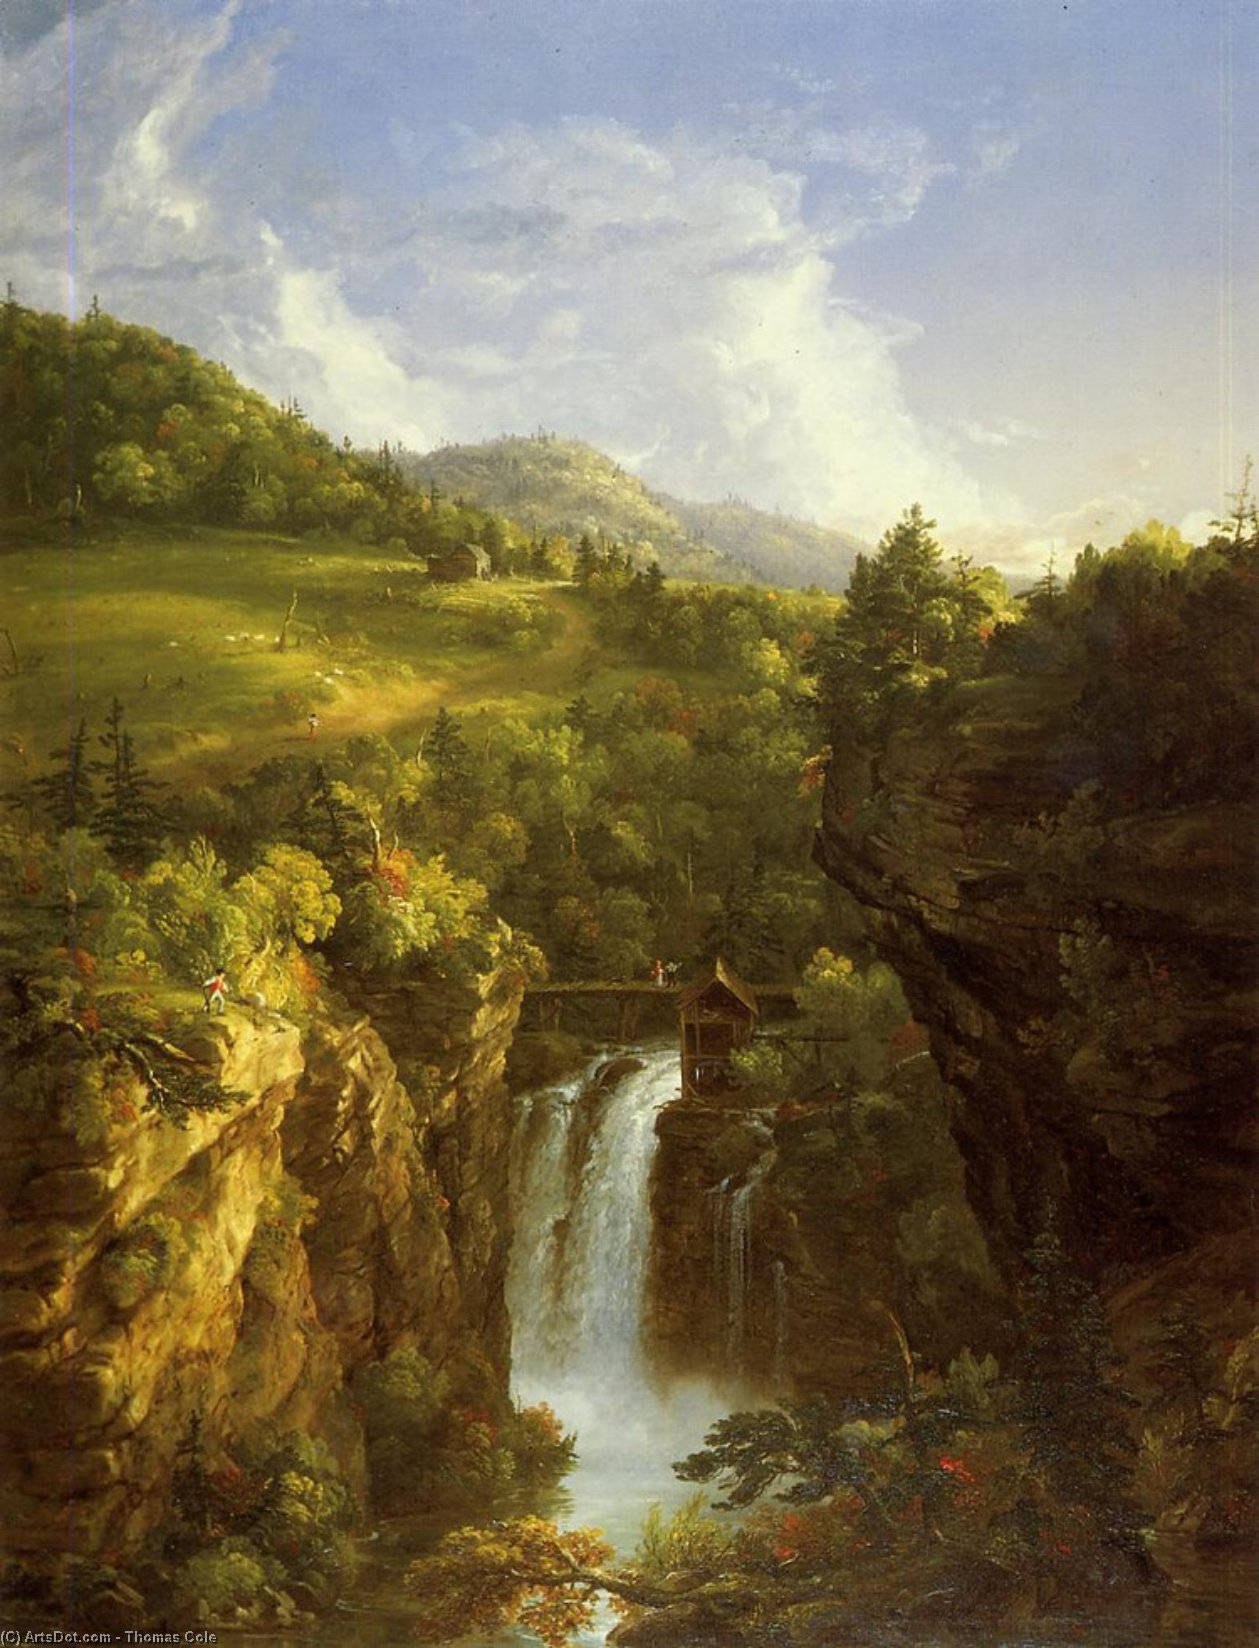 Genesee Scenery (also known as Poop), Sculpture by Thomas Cole (1801-1848, United Kingdom)